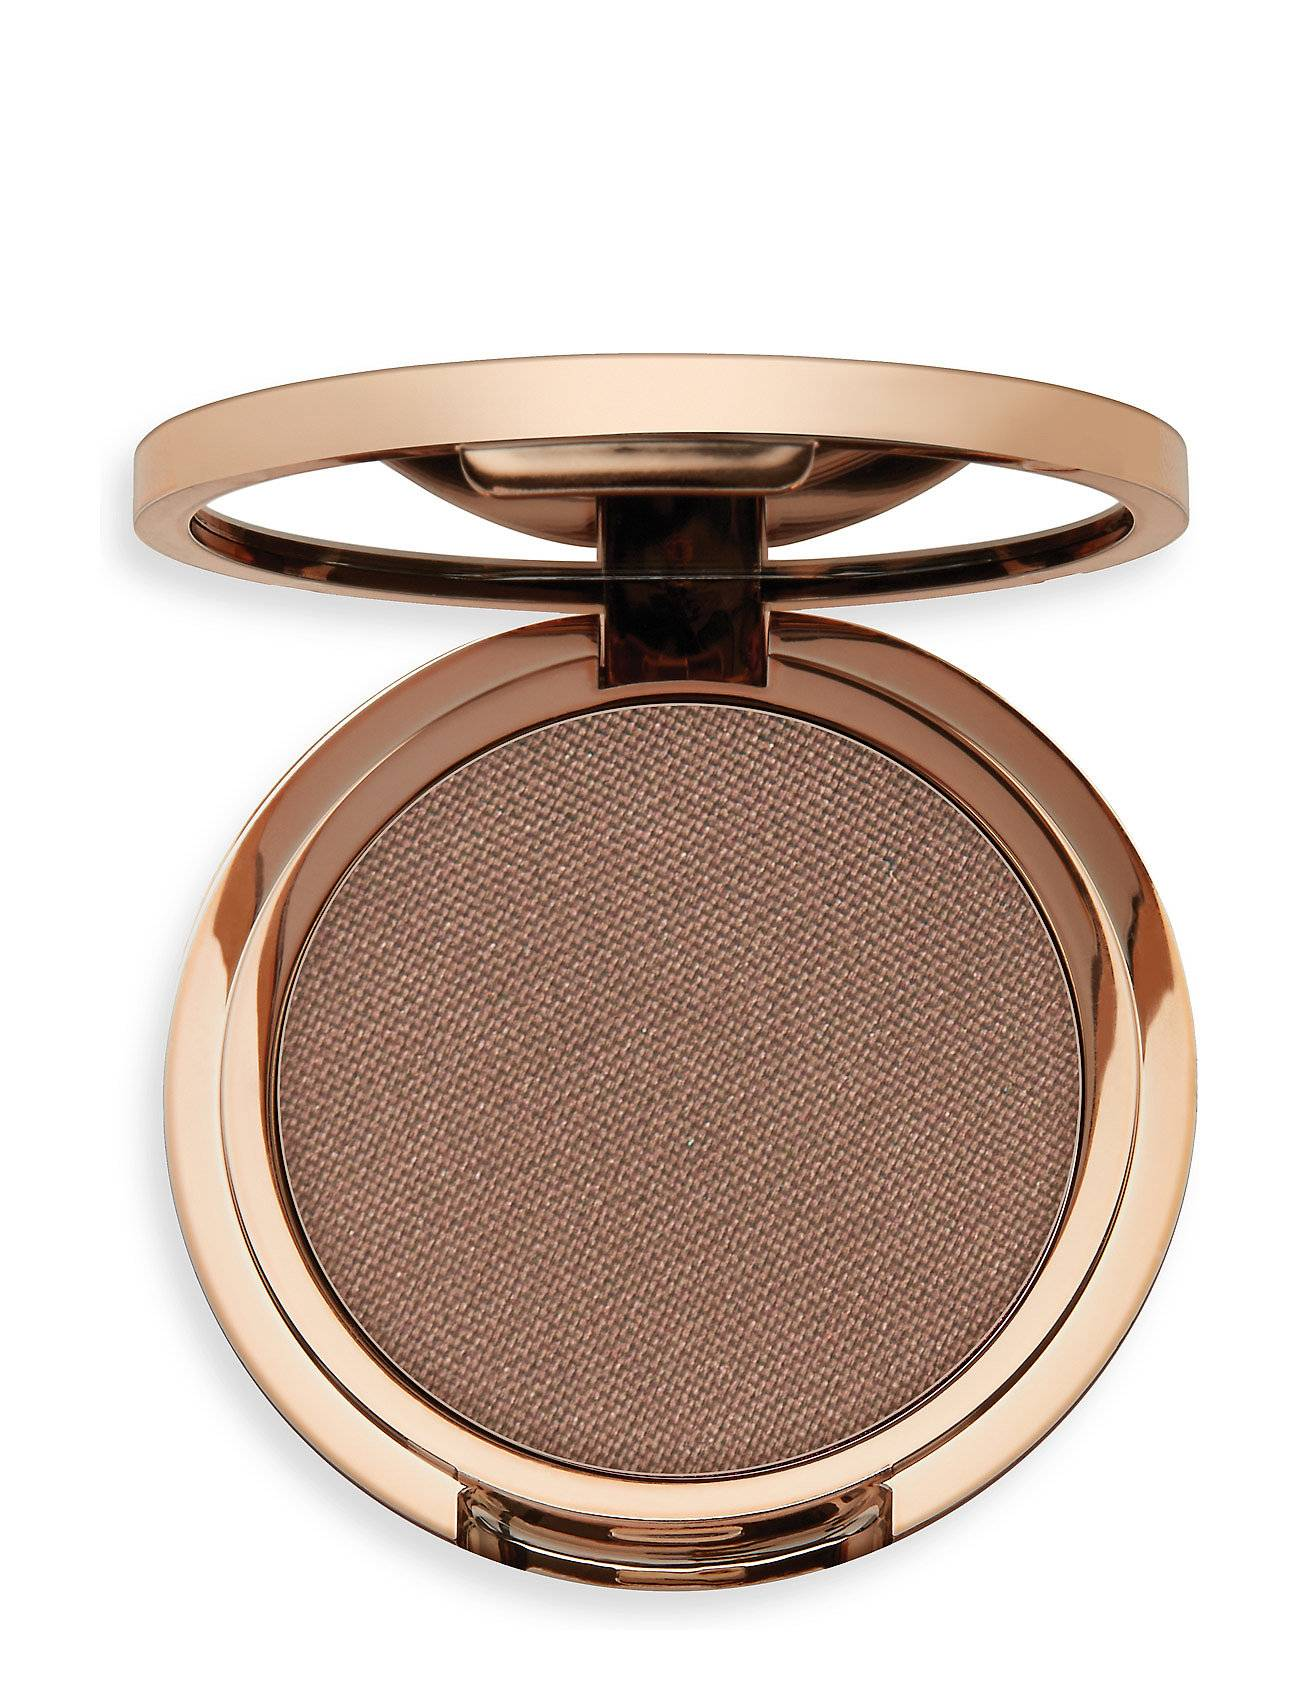 Nude by Nature Pressed Eyeshadow 03driftwood Beauty WOMEN Makeup Eyes Eyeshadow - Not Palettes Ruskea Nude By Nature